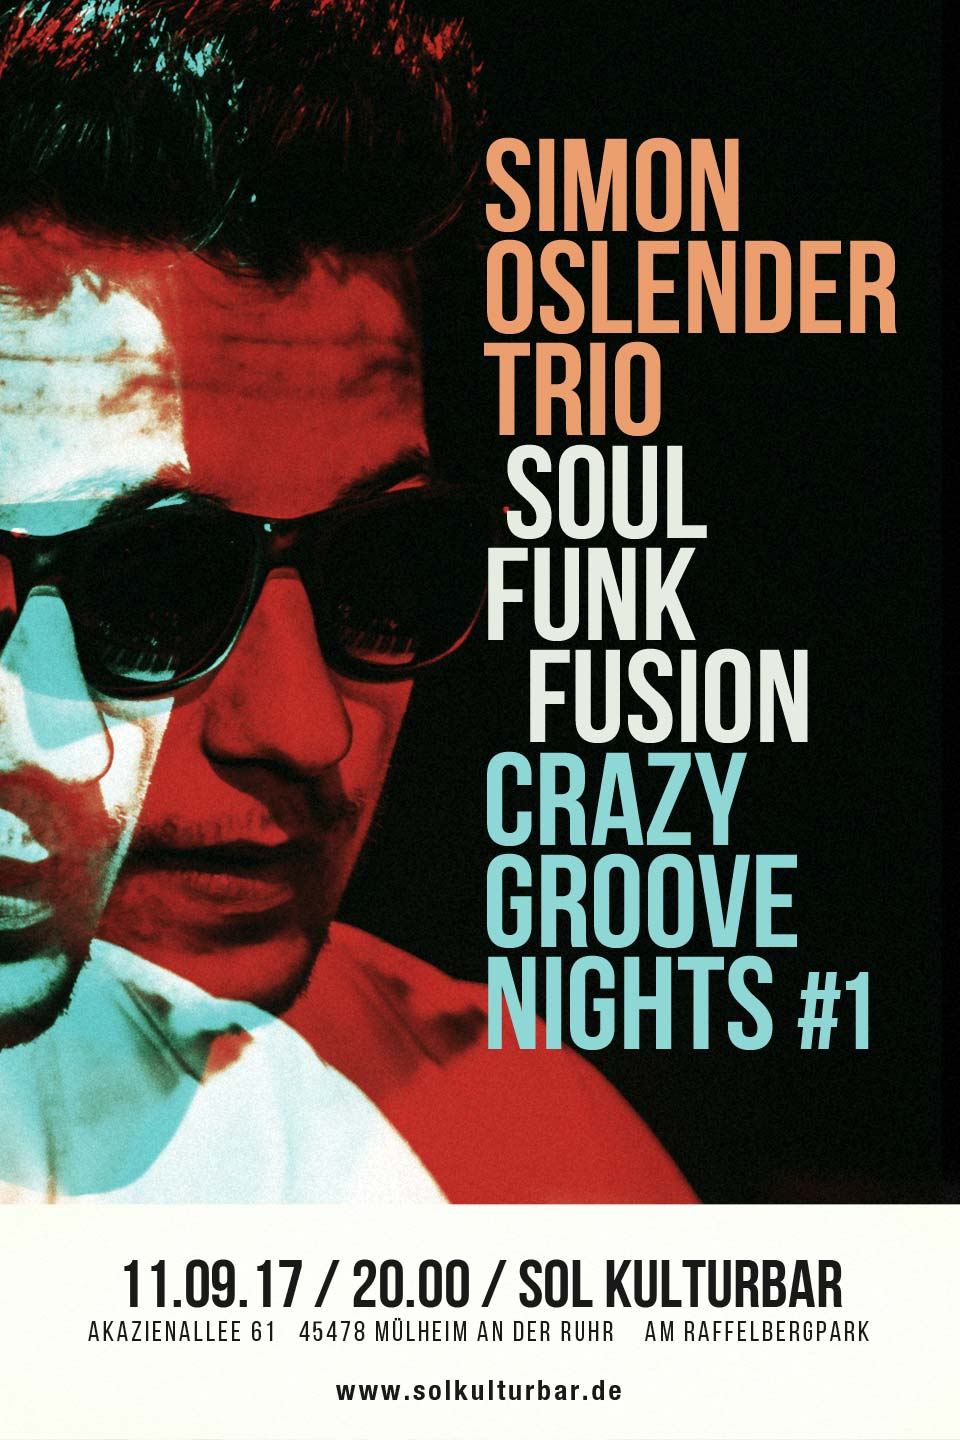 Simon Oslender Trio - Crazy Groove Nights No1, sol kulturbar